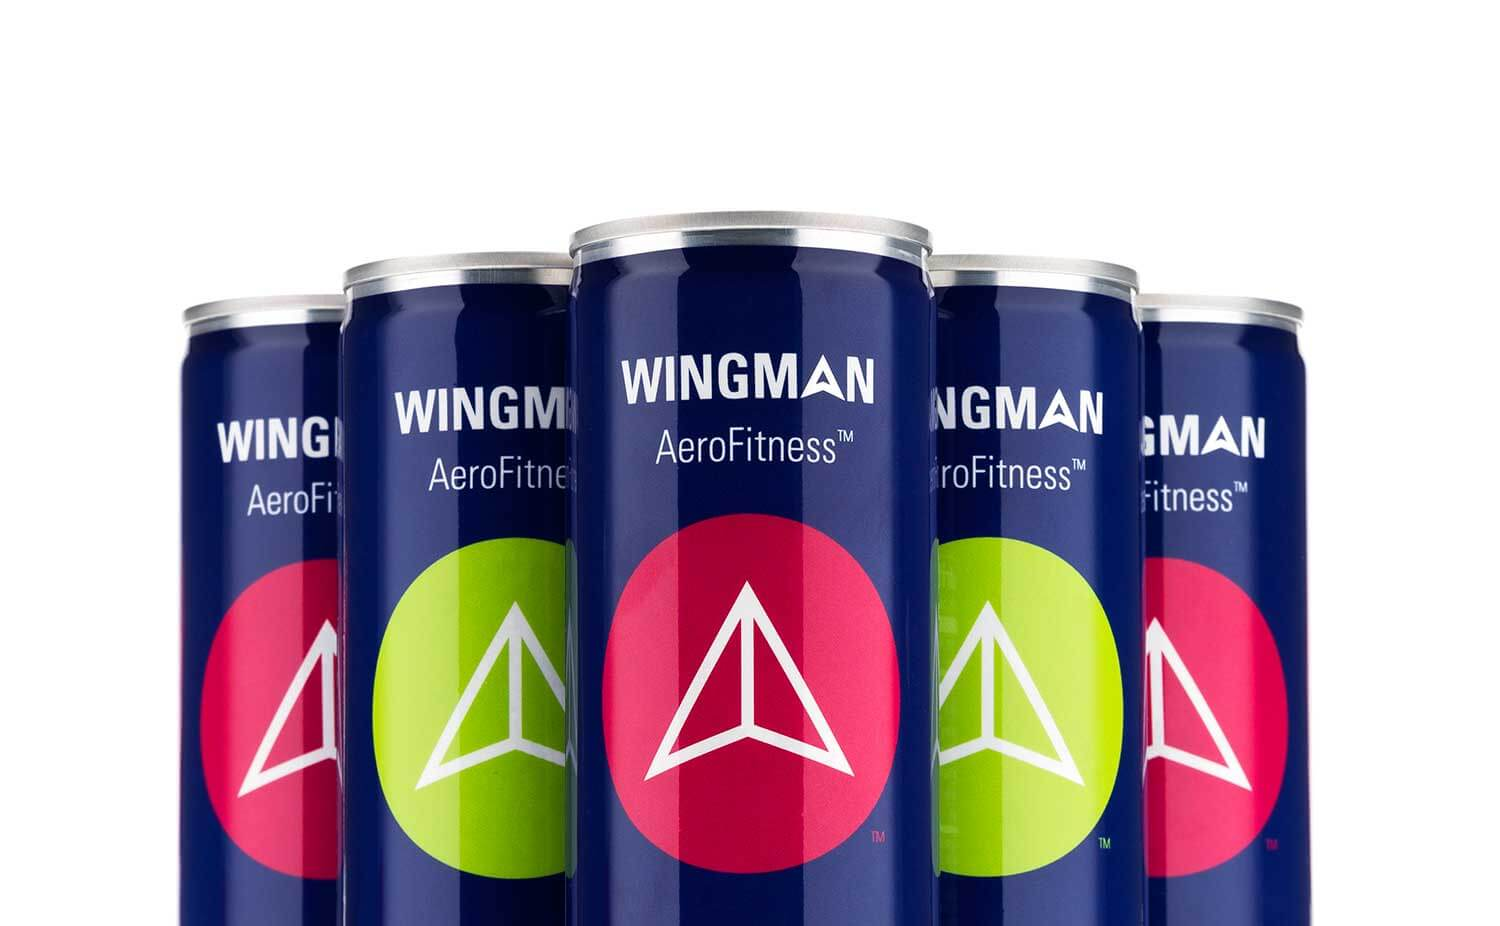 Cans of Wingman